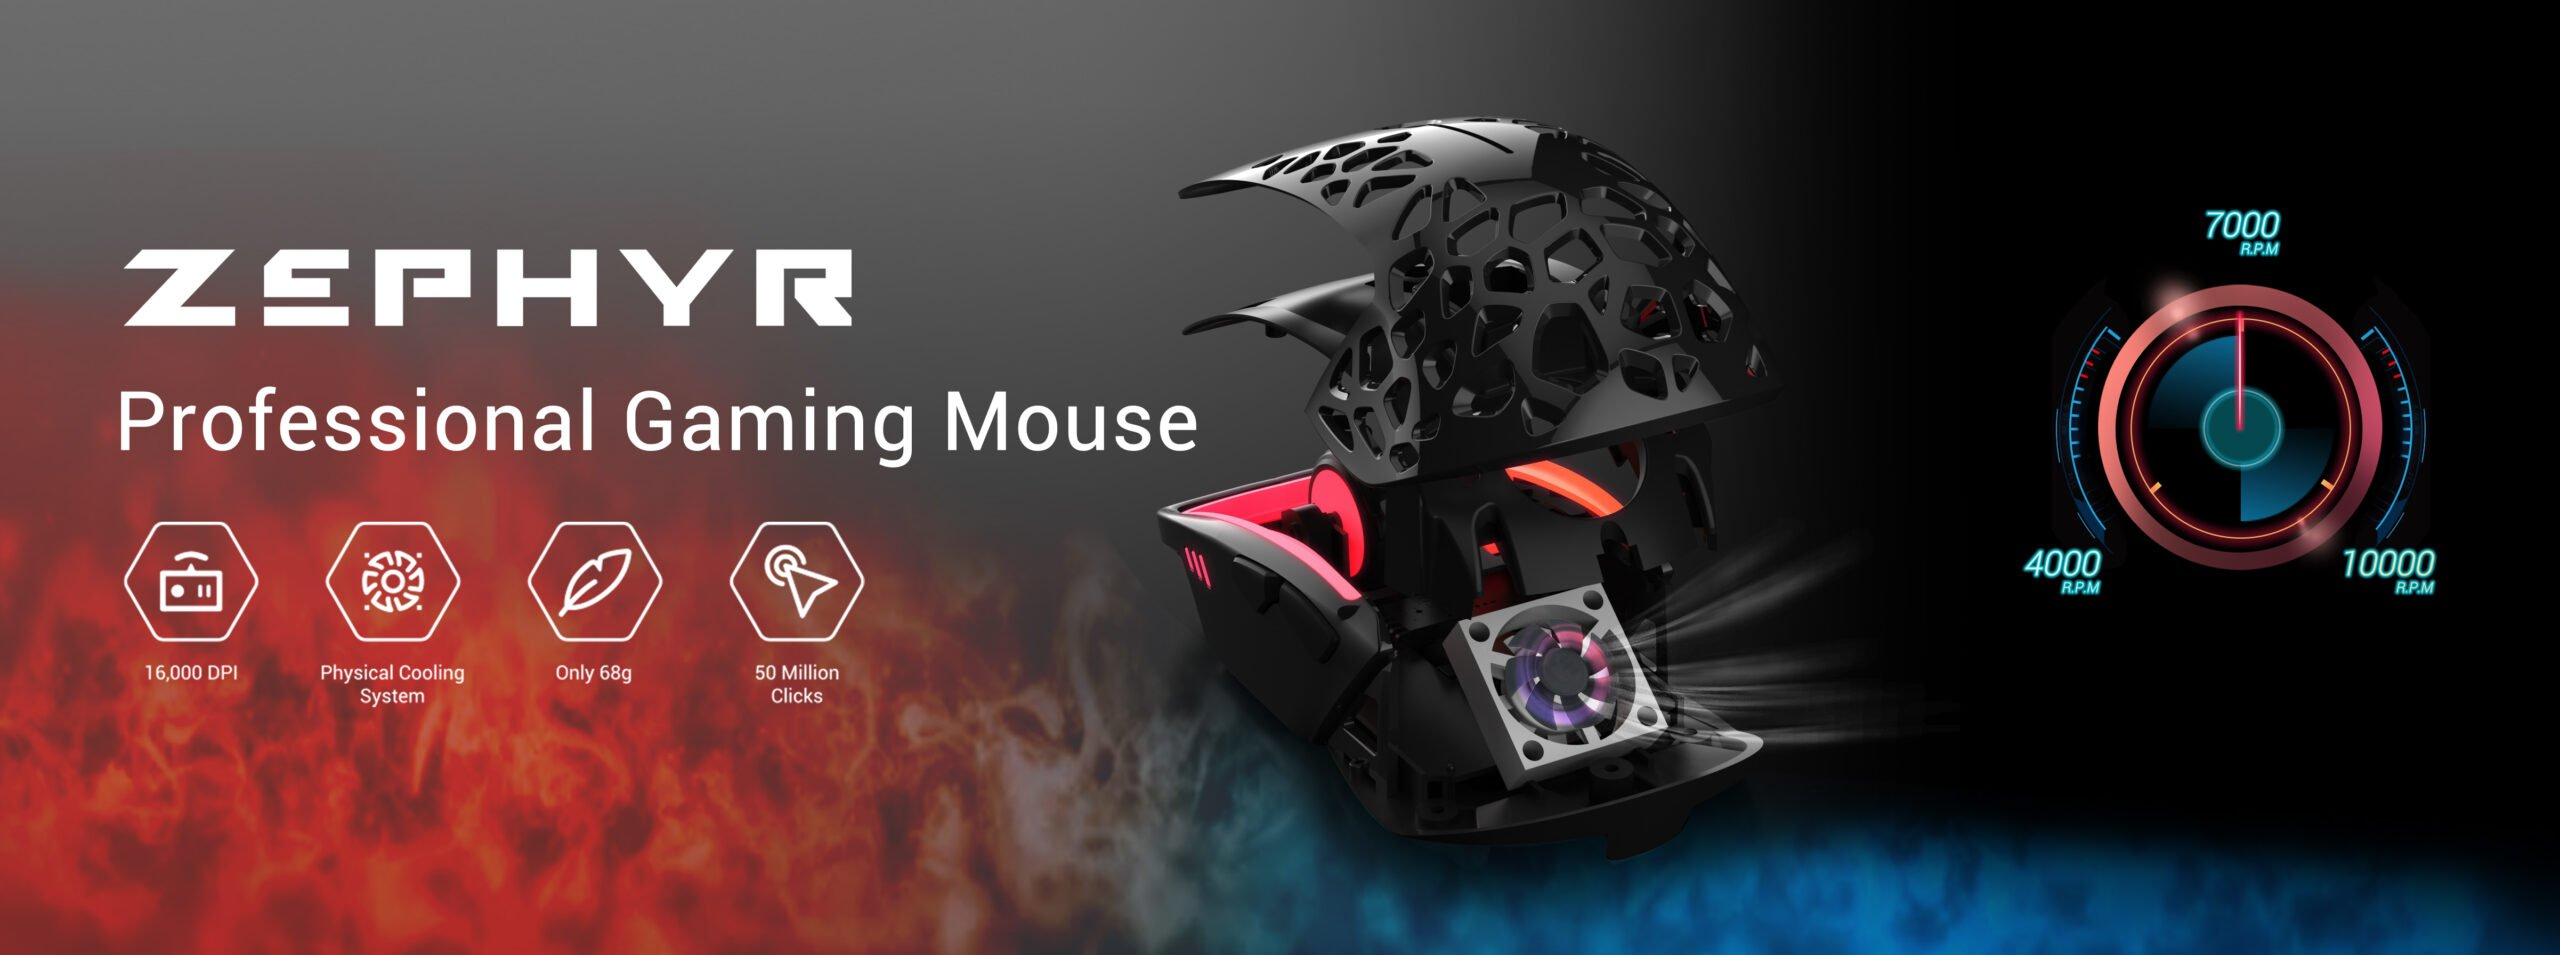 Zephyr Ultra lightweight Gaming Mouse Adjustable Cooling System pic1